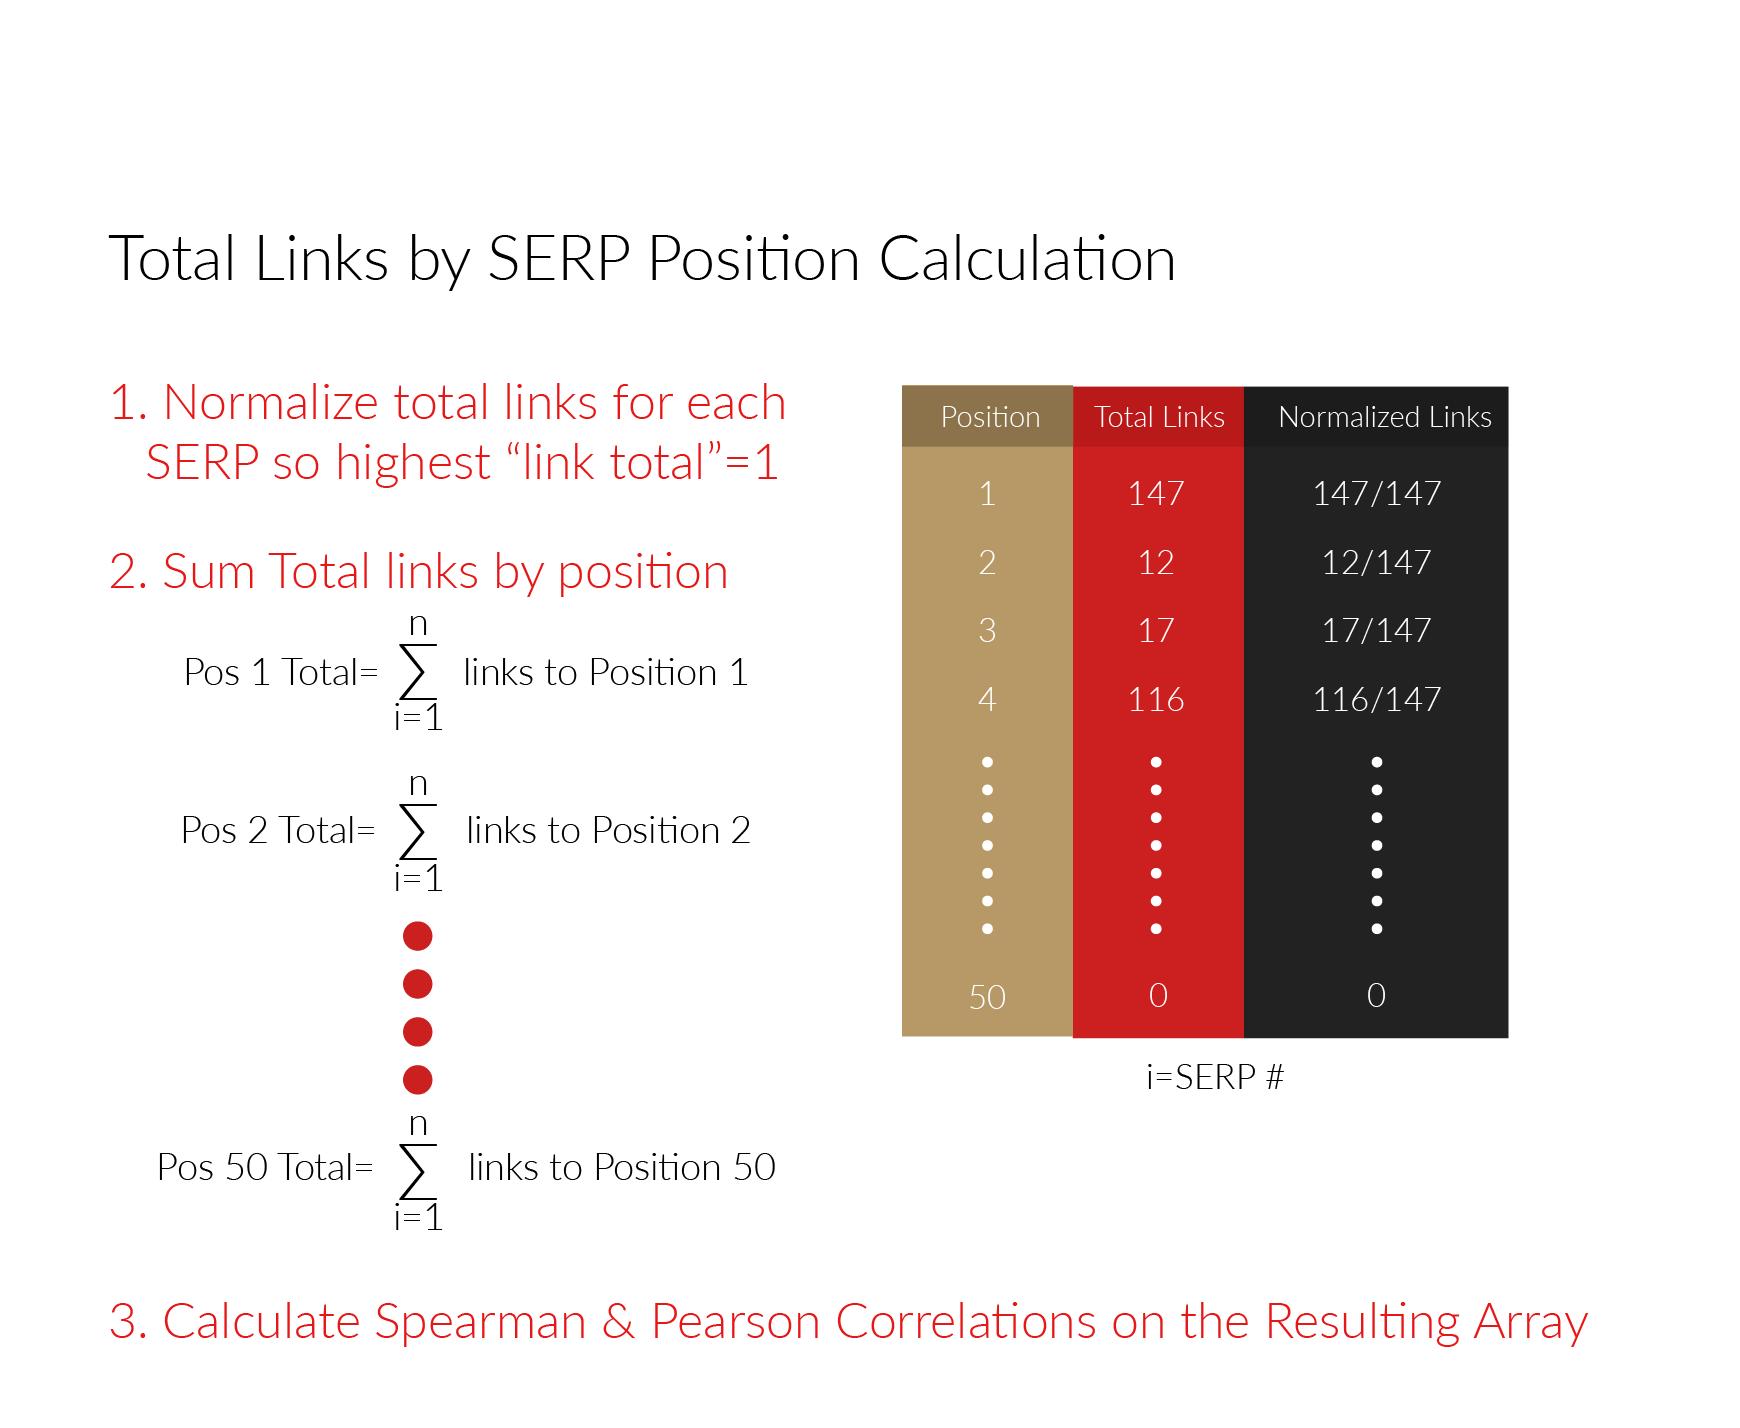 Total Links by SERP Position Calculation